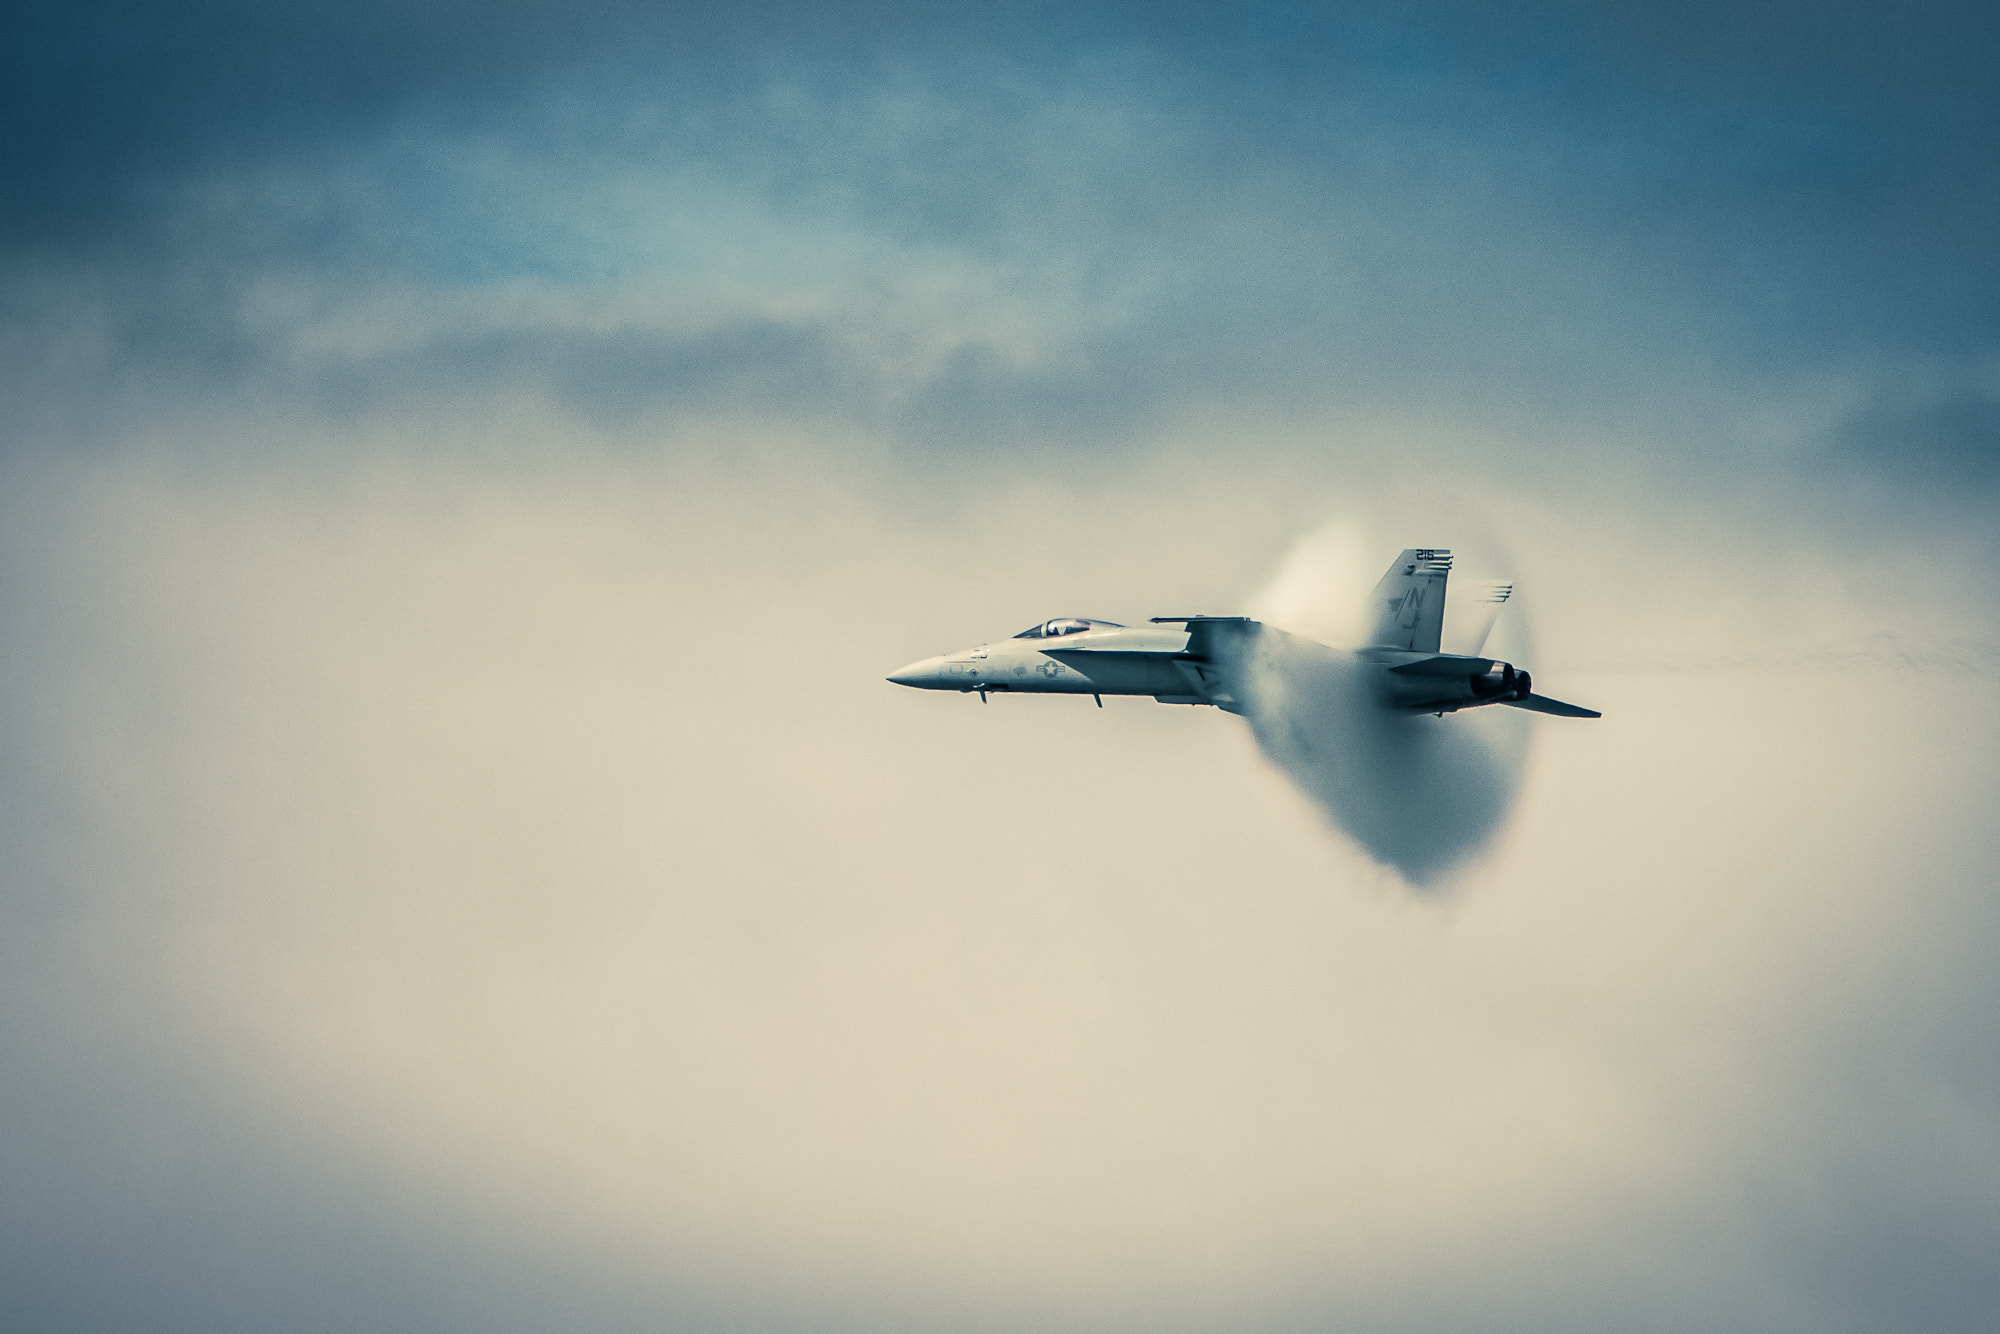 Photograph Transonic #1 by Shawn Clover on 500px